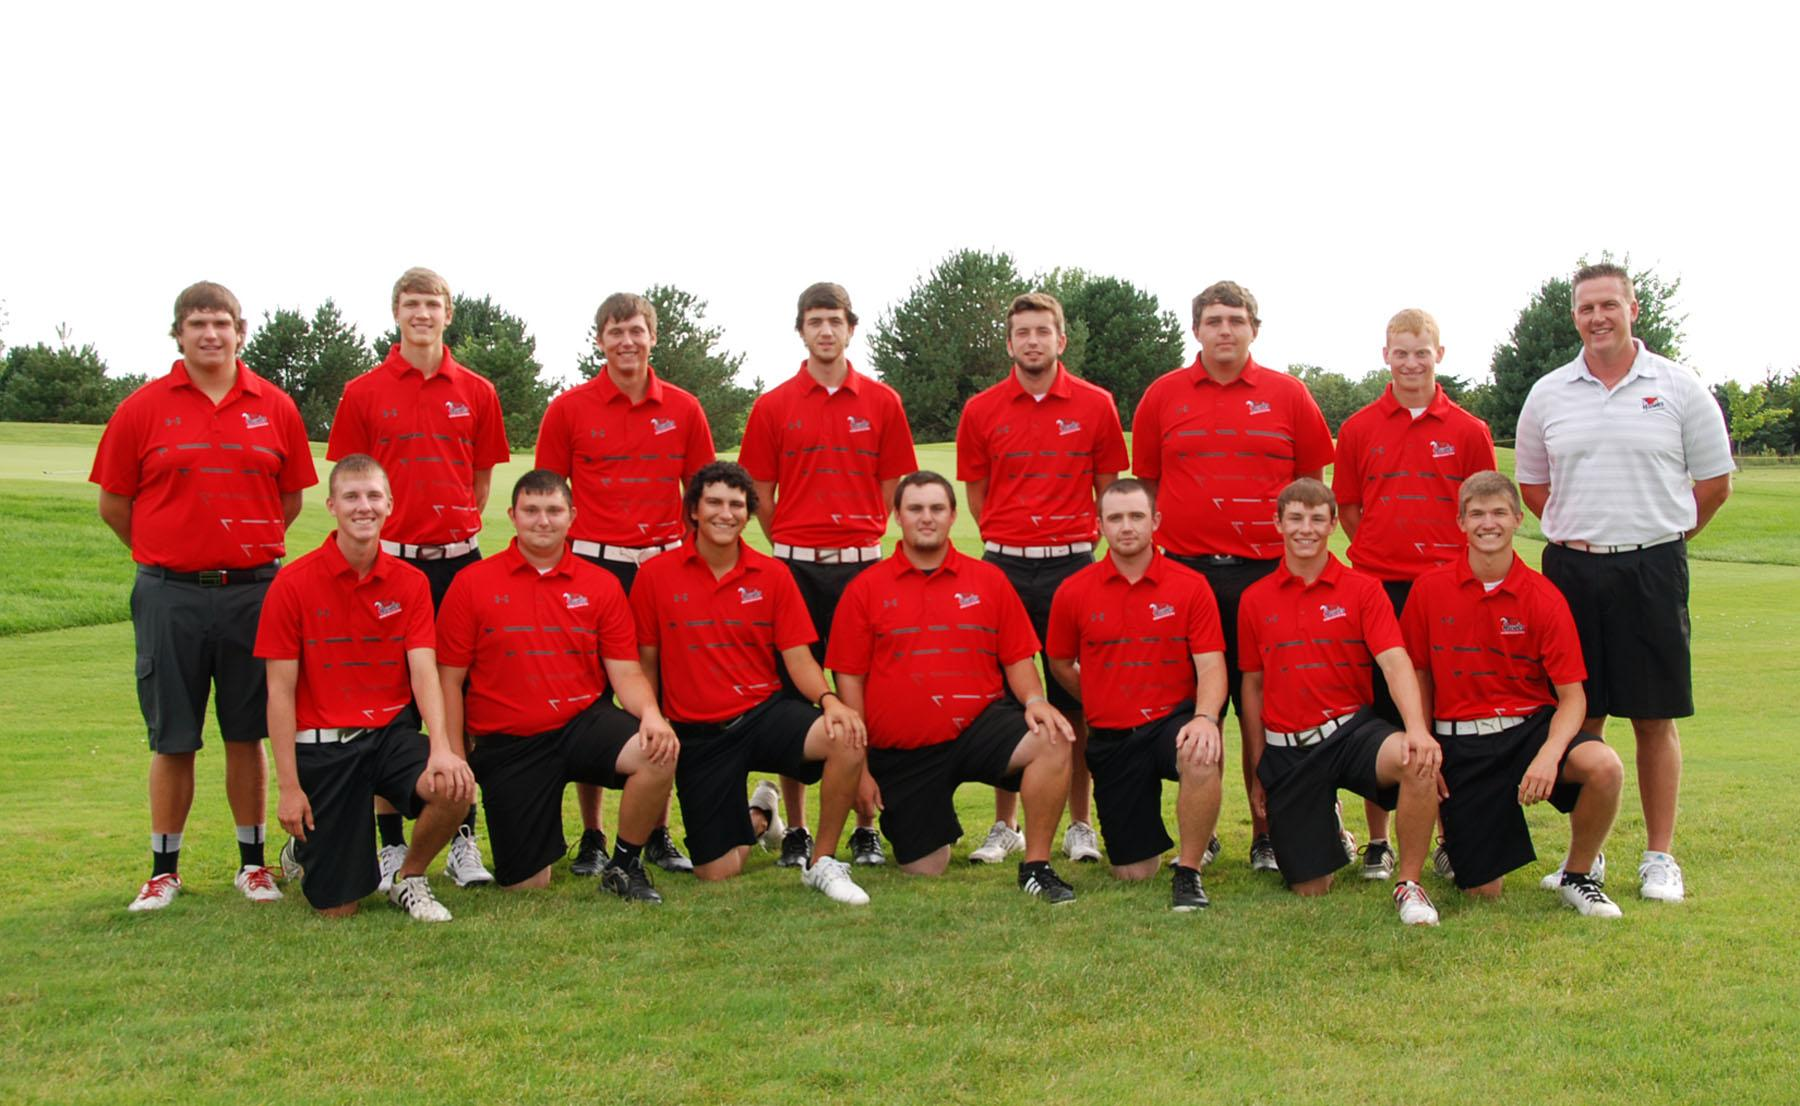 Members of the Northeast Community College Golf Team include (front row, left to right), Preston Peters, Bancroft; Dustin Vinson, Grand Island; Michael Bergquist, Cheyenne, WY; Alex Dredge, Valentine; Conner Watson, Omaha;  Corby Forbes, Brunswick; and Michael Brockhaus, Humphrey. Back row (left to right) Gage Garnas, Julesburg, CO; Lucas Bradfield, Beemer; Trever Miller, Lexington; Justin Bruntz, Ft. Collins, CO; Justin Mlnarik, Linwood; Stephen GrandPre, Cheyenne, WY; Trevor Reiss, Ogallala; and Brad Bosh, coach. (Courtesy Photo)